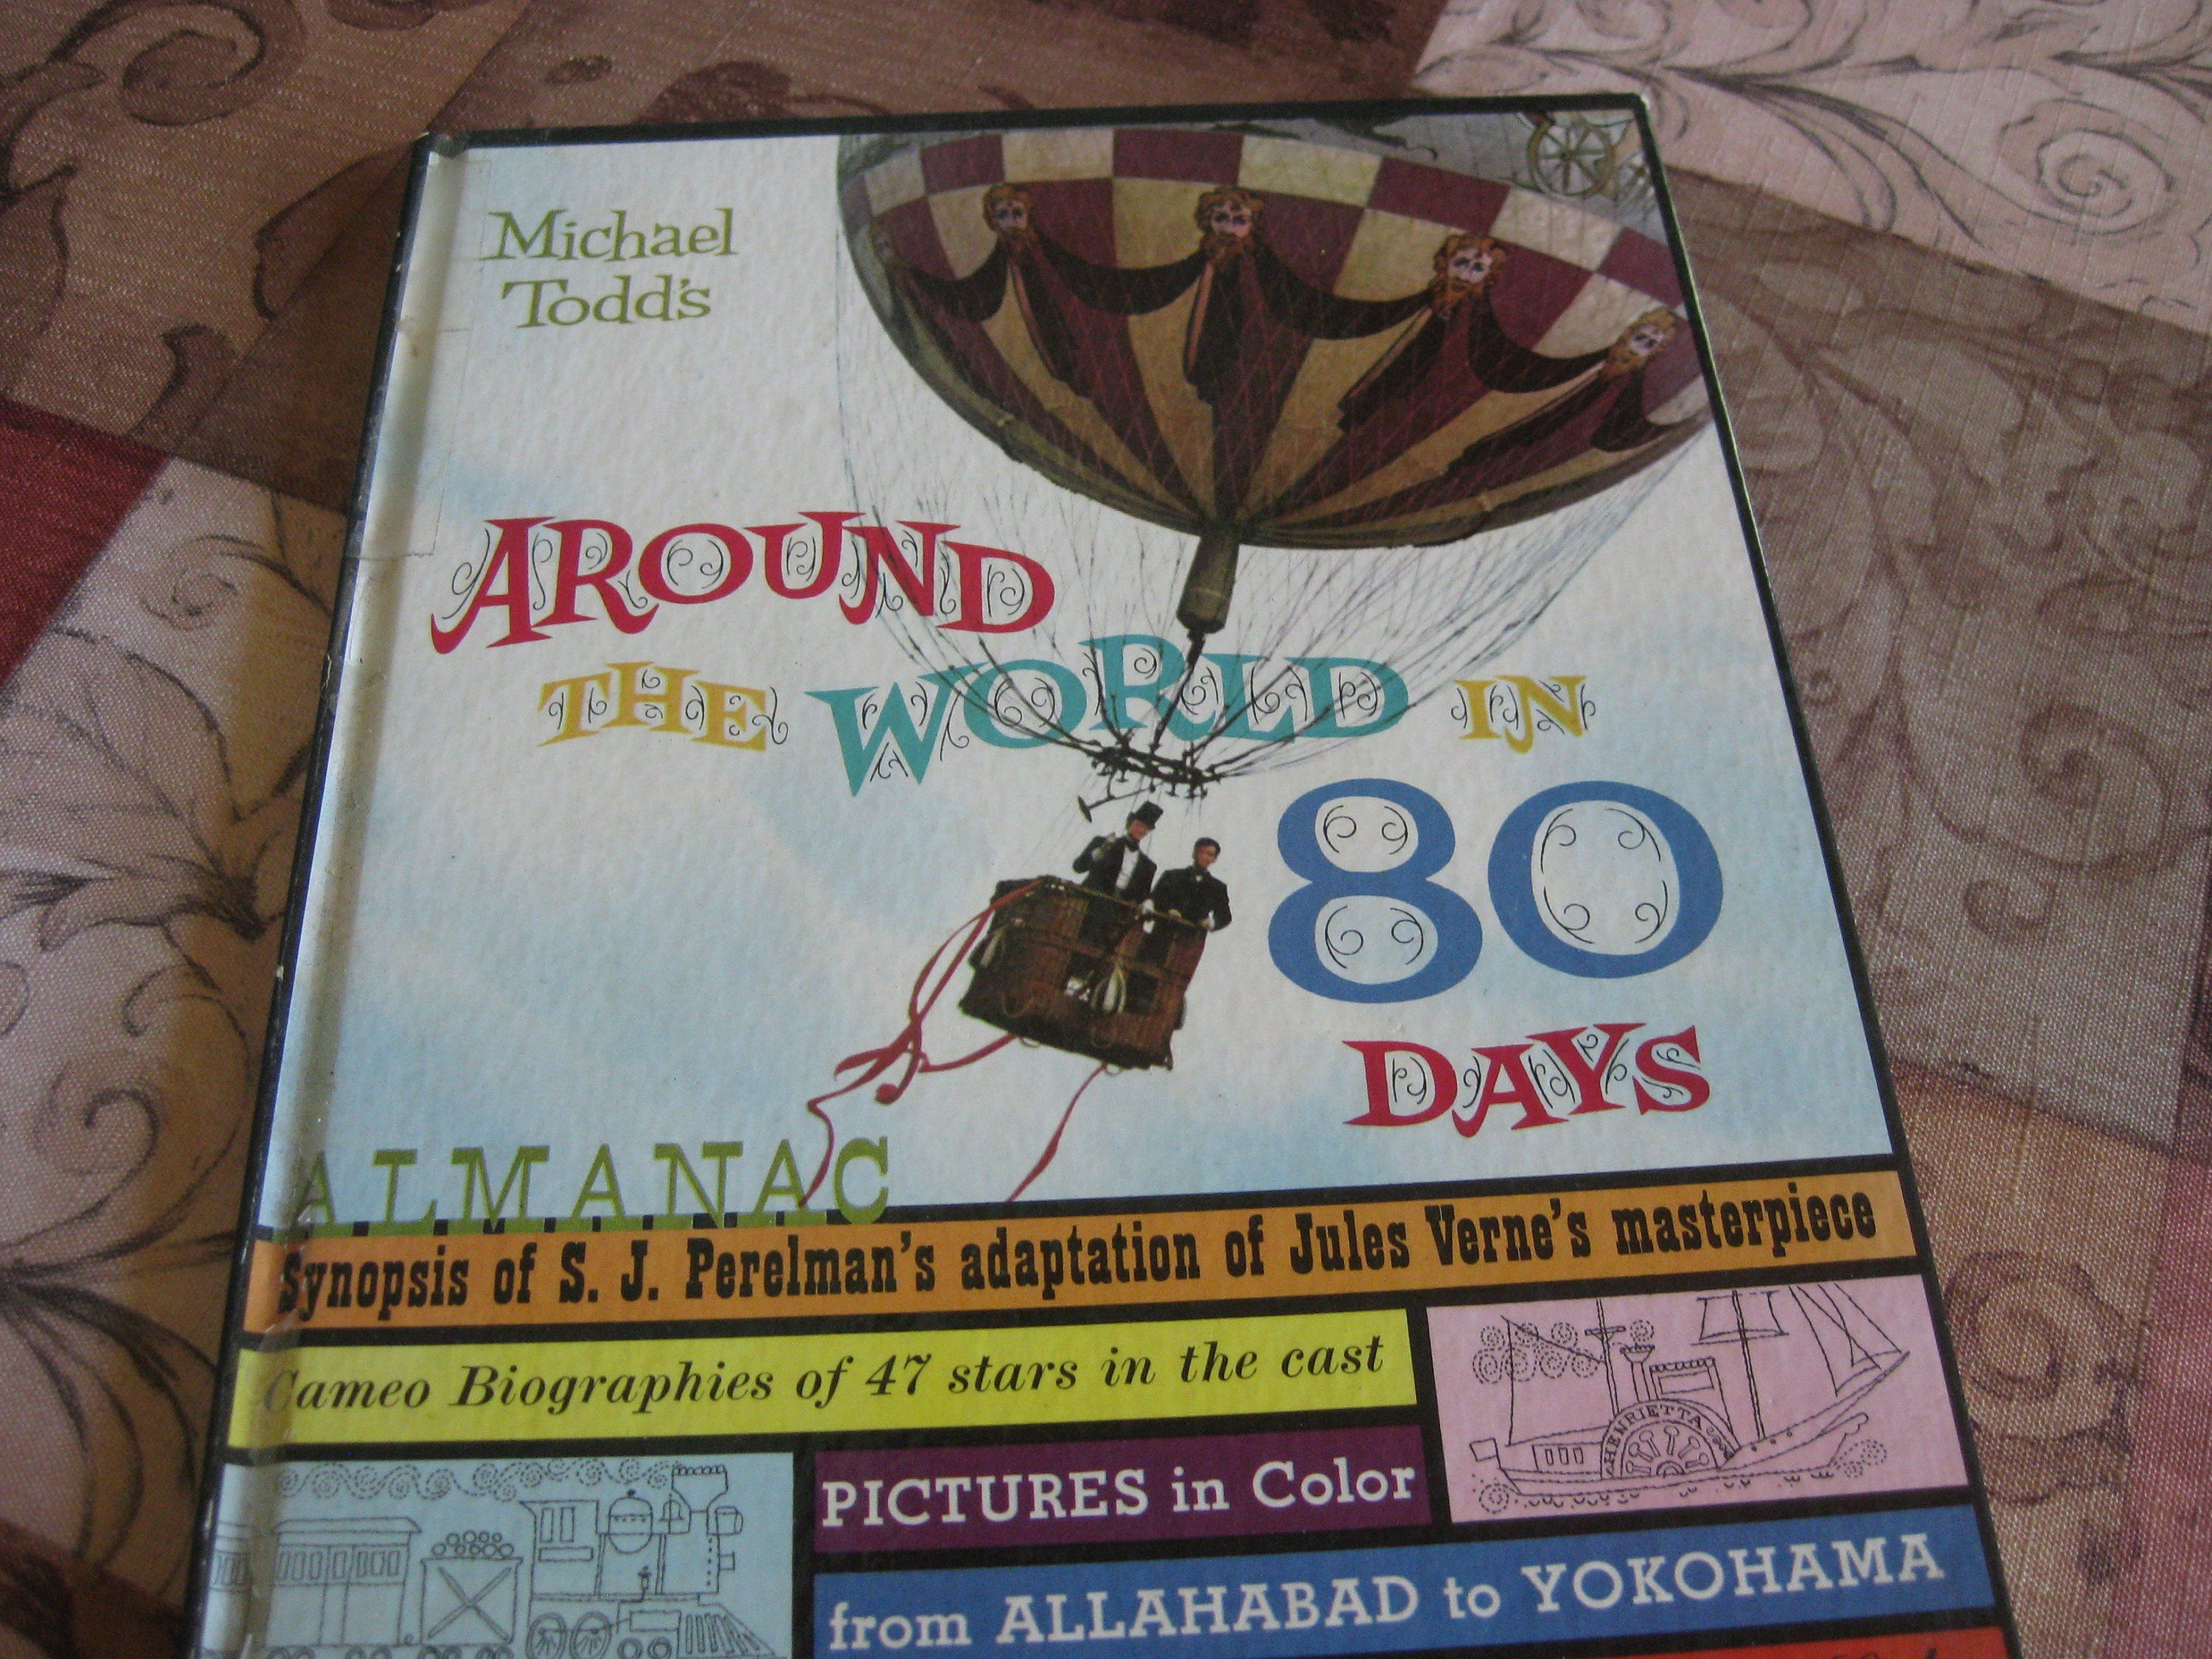 Around the World in 80 Days, Michael Todd, movie almanac. Adaptation of Jules Verne's masterpiece by S.J. Perelman, 1956 epic movie event #epicmovie